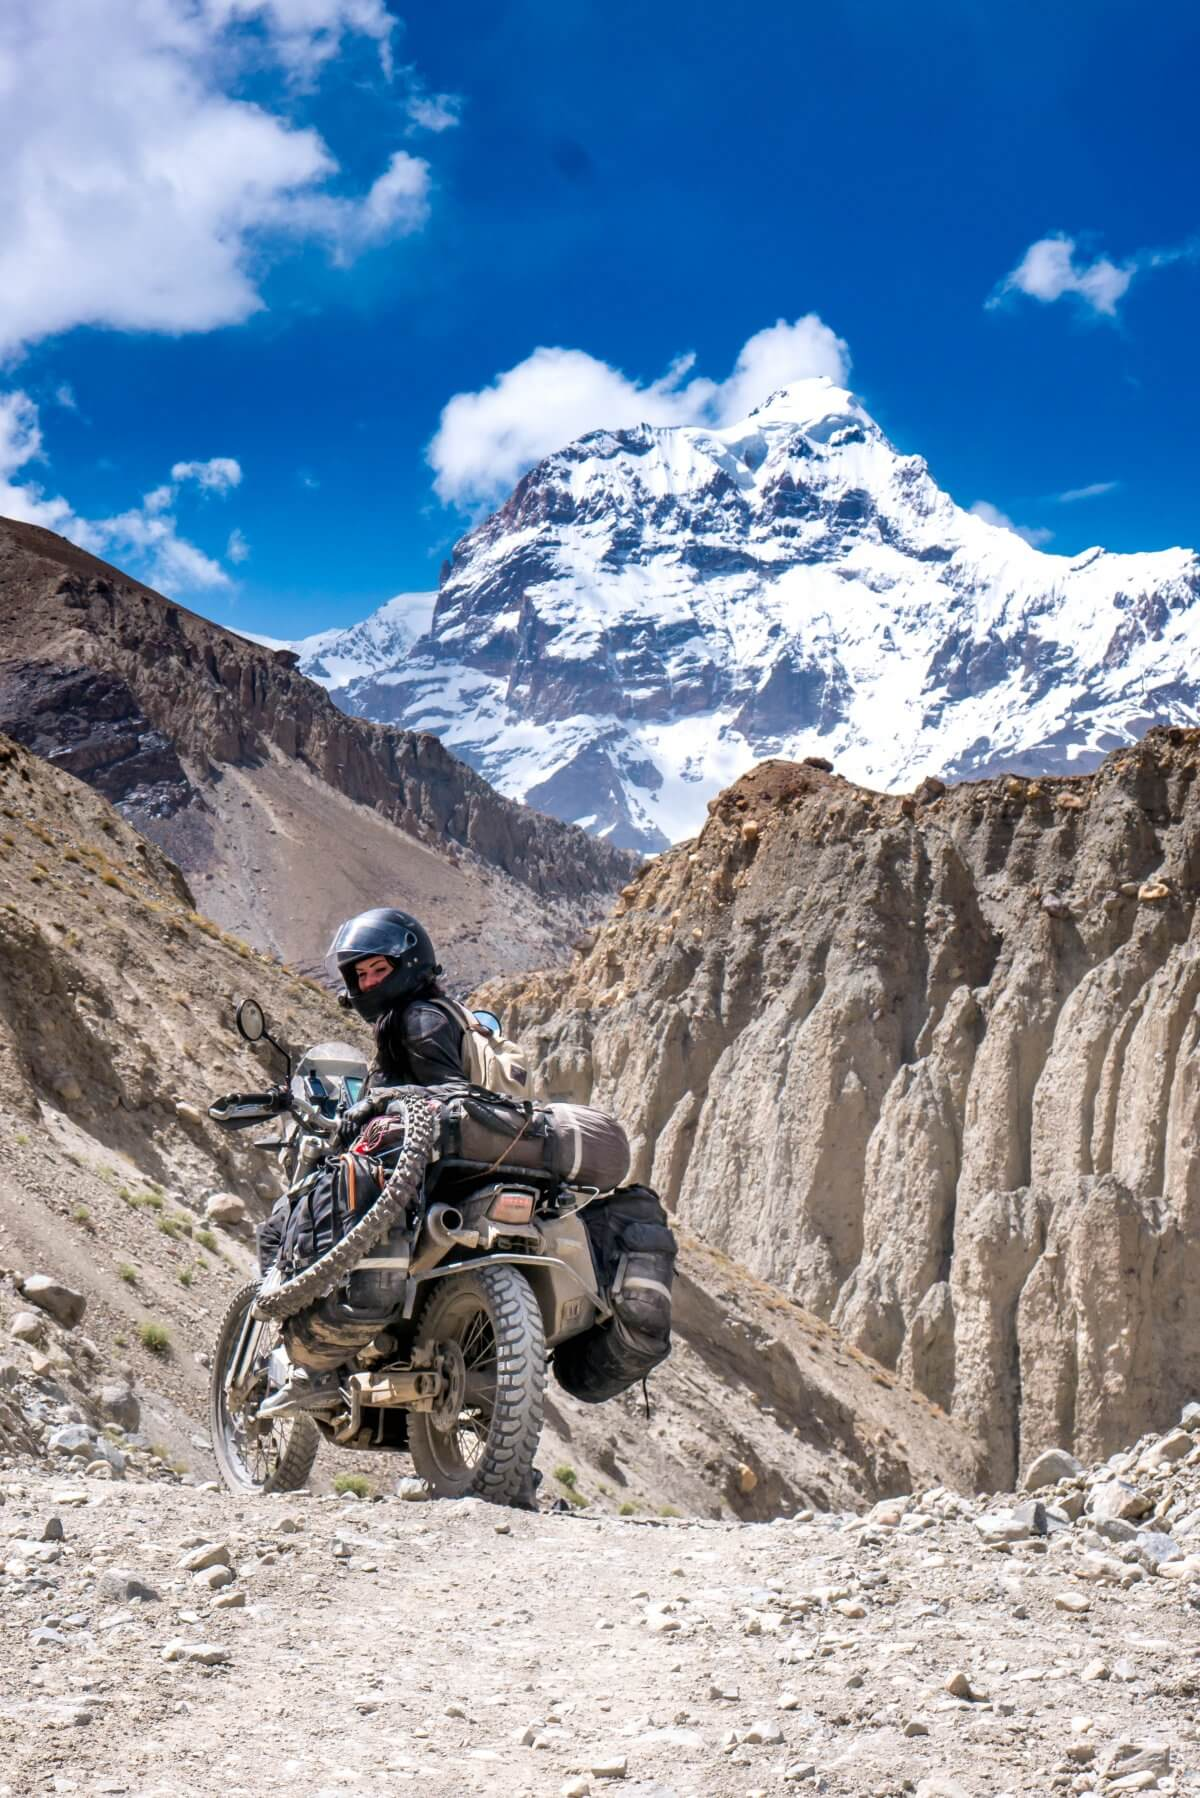 RideUnlimited: Kazakhstan, Uzbekistan and tackling the Bartang Valley in Tajikistan